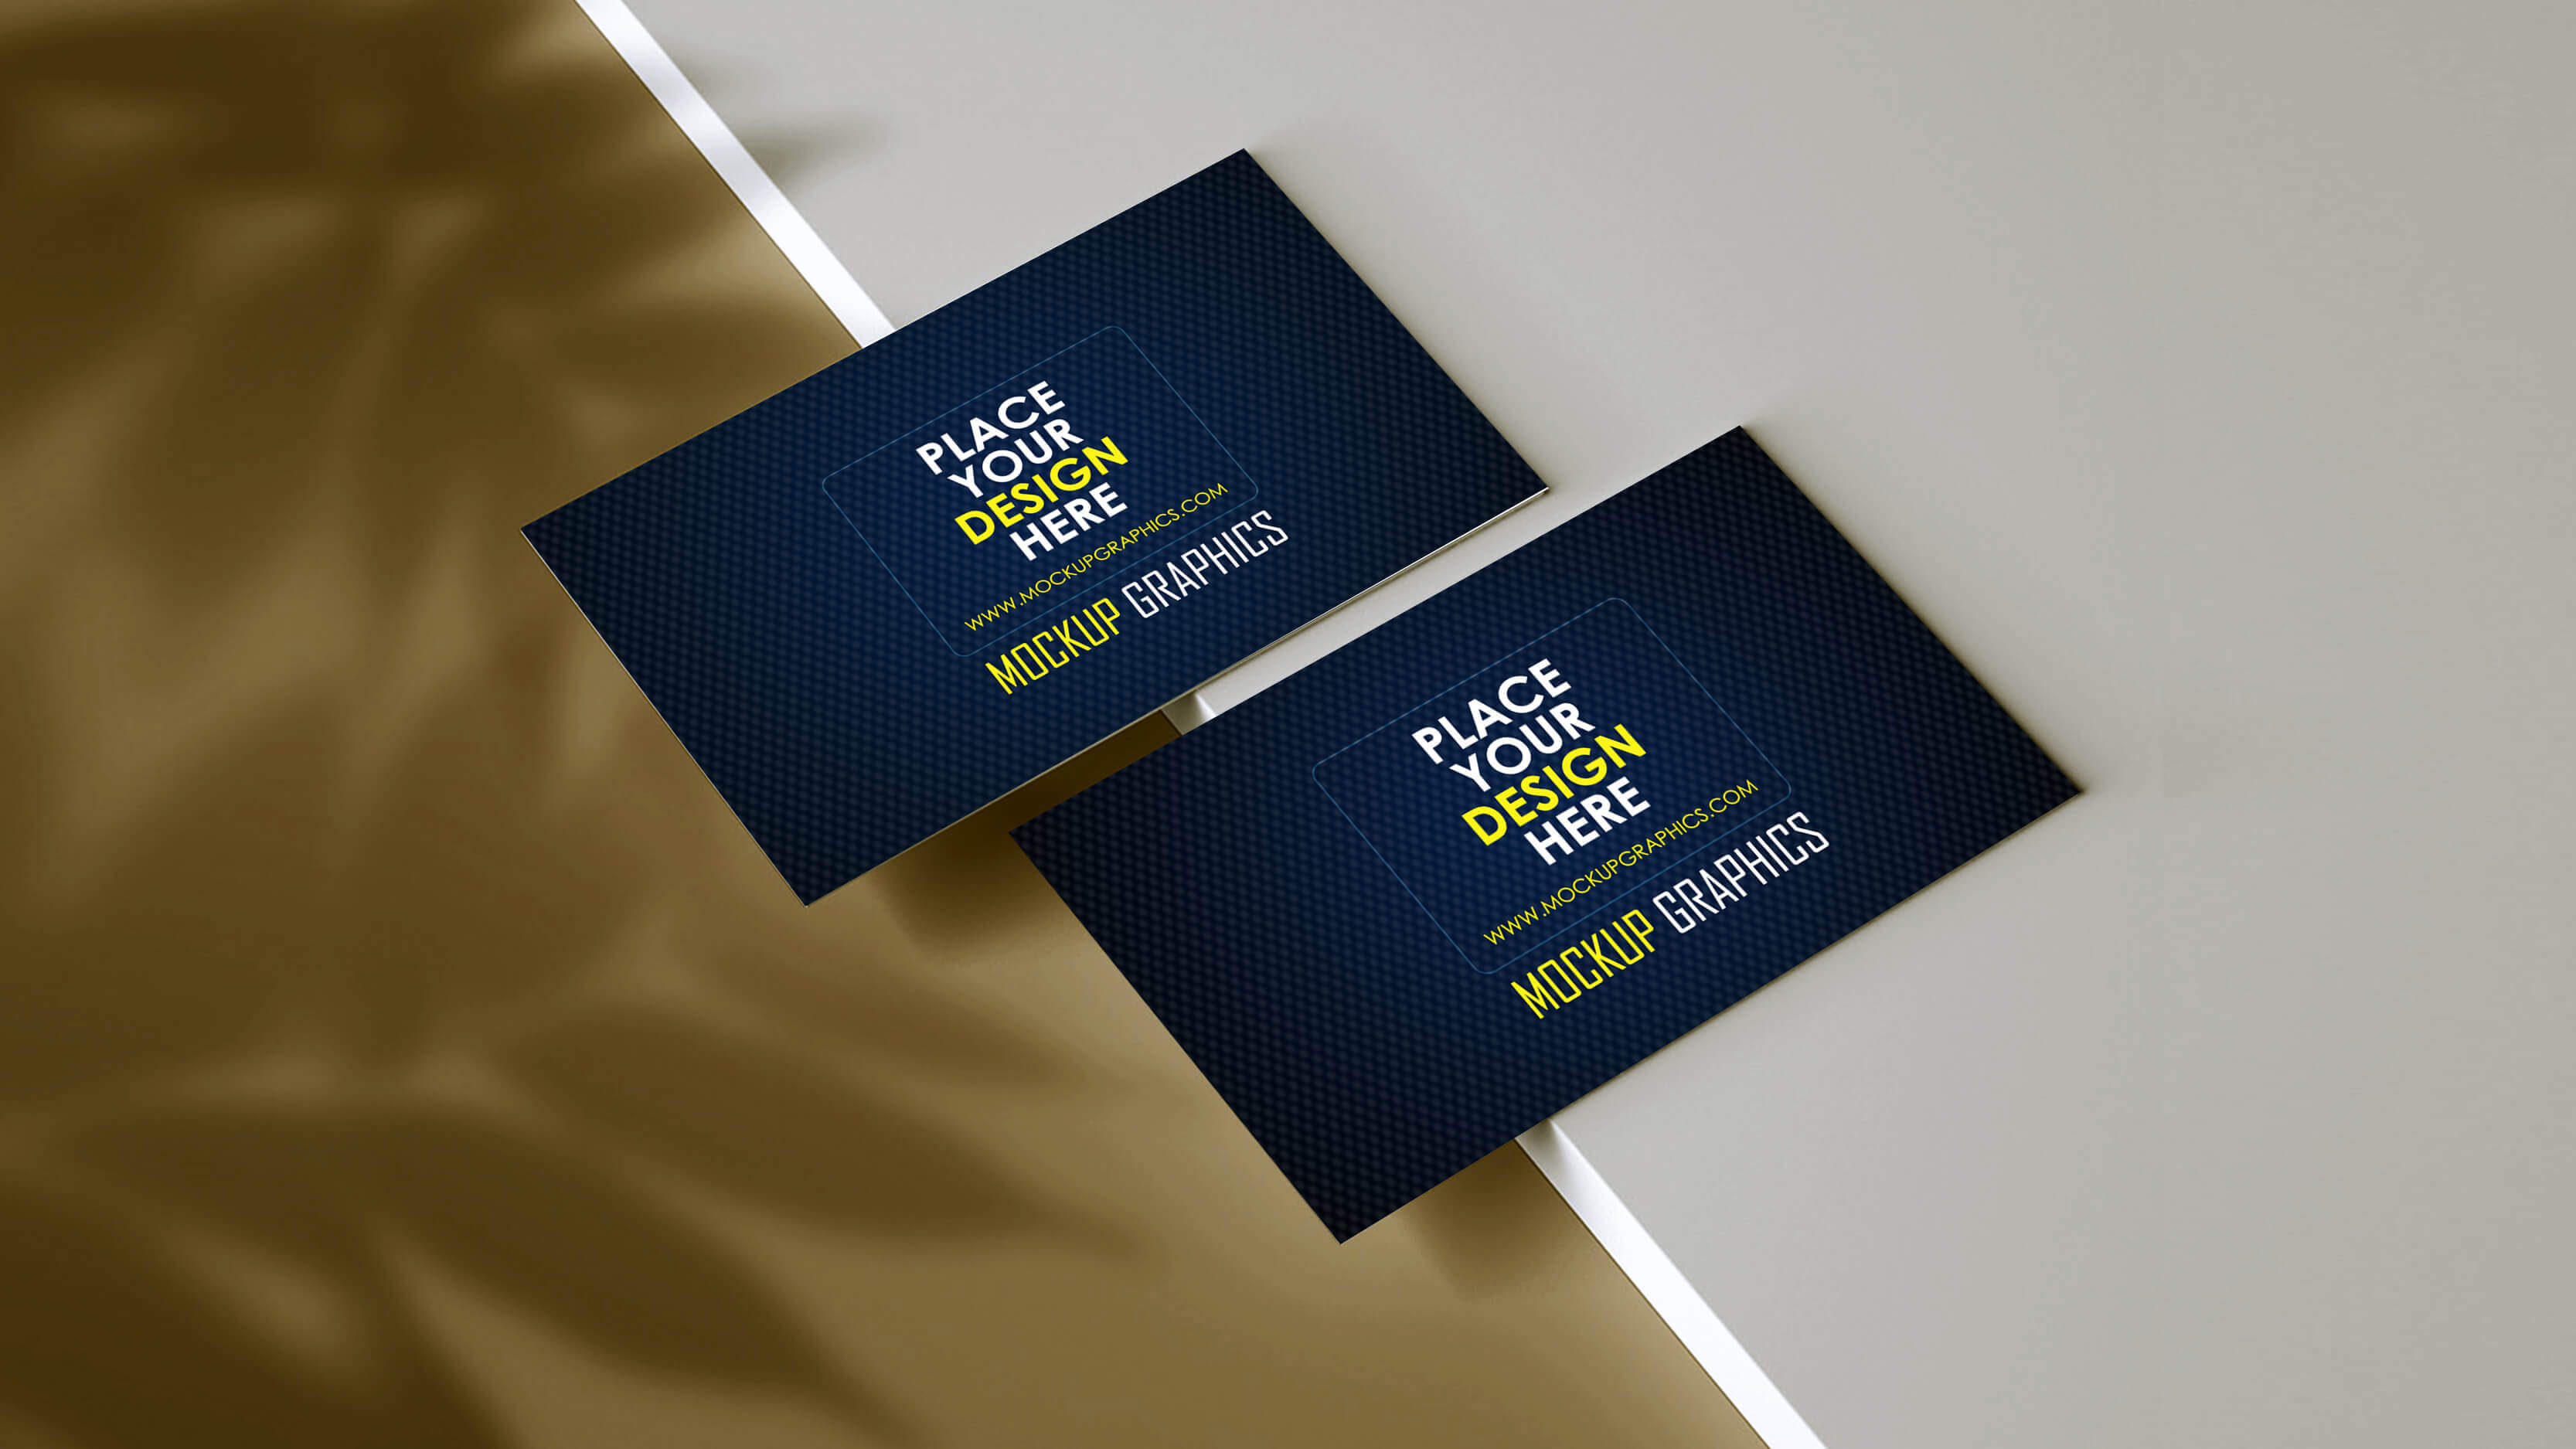 creative business card mockup - www.mockupgraphics.com